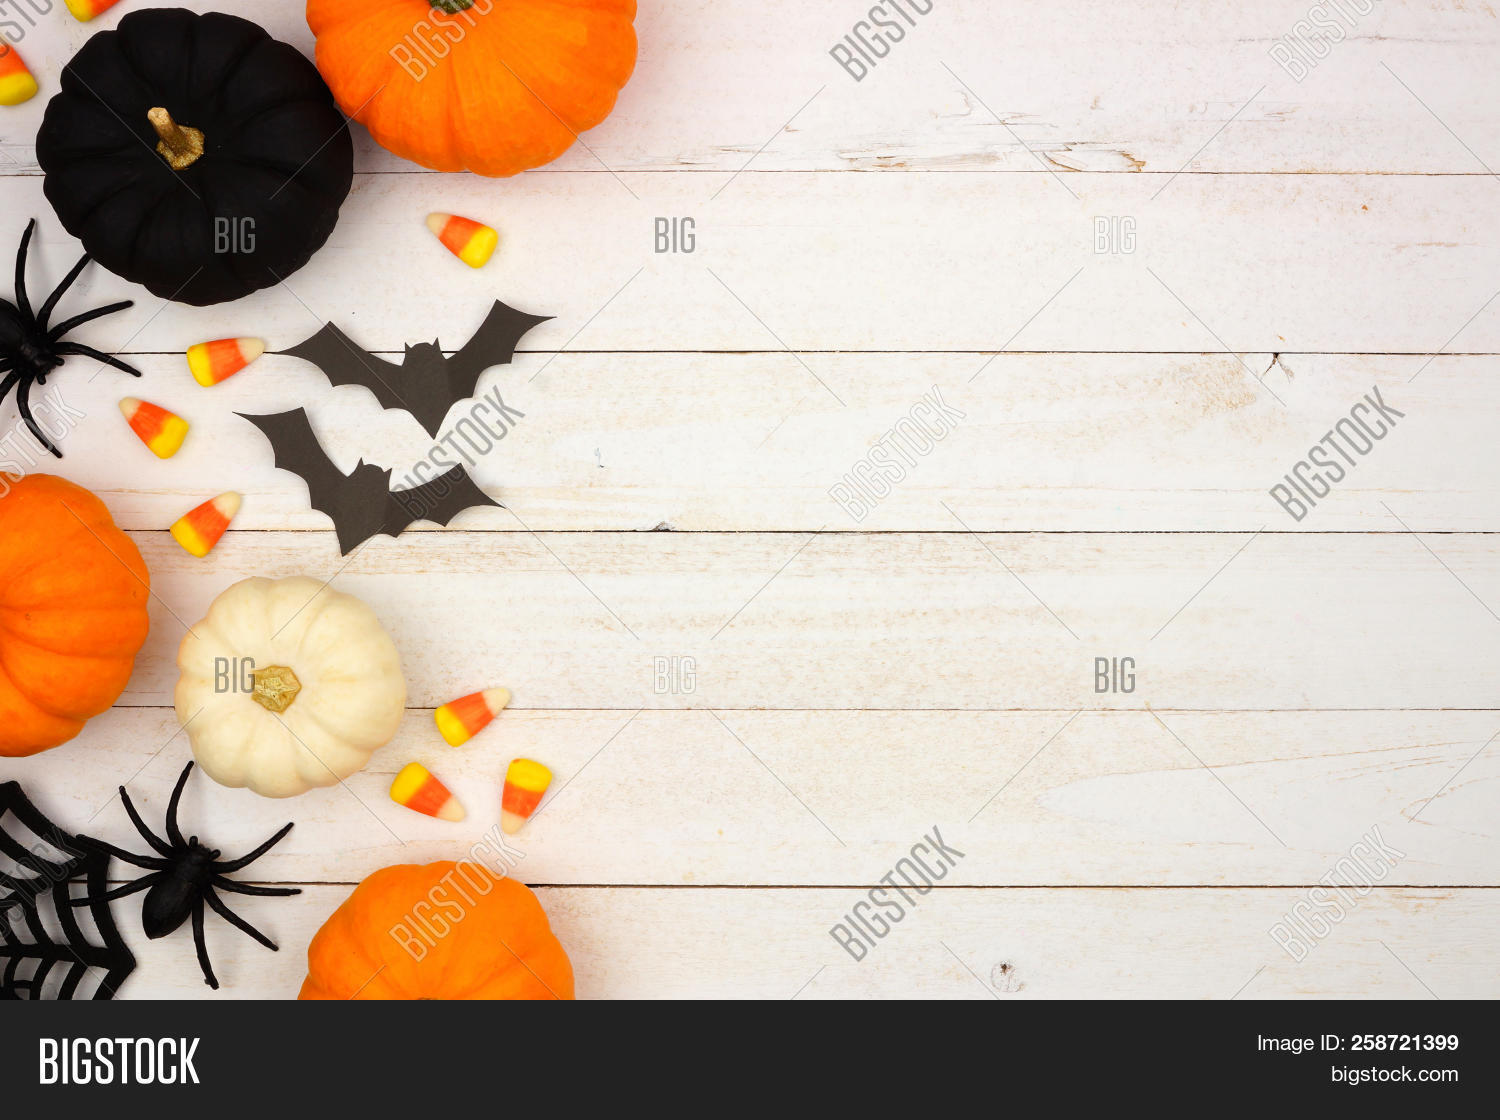 above,autumn,backdrop,background,black,border,candy,celebration,copy,corn,culture,decor,decoration,design,edge,fall,festive,flat,frame,group,halloween,holiday,home,horror,lay,modern,october,or,orange,overhead,party,pumpkins,scary,season,seasonal,side,simple,space,spider,spiderweb,spooky,top,traditional,treat,trick,view,web,white,wood,wooden